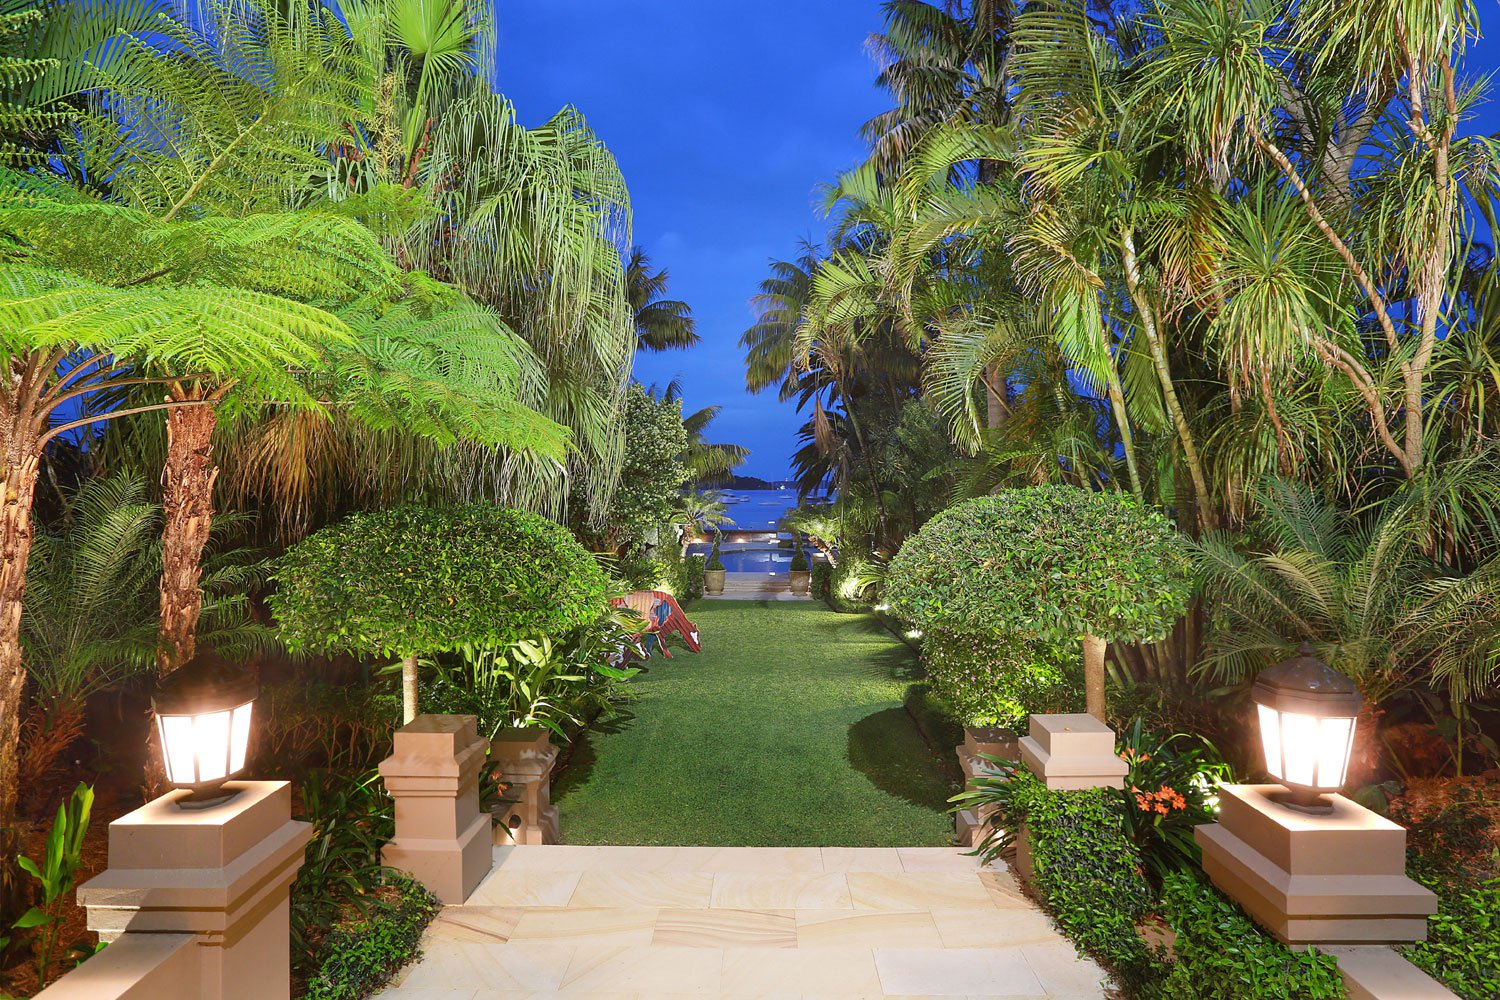 Twilight at Berthong serves to accentuates its lush, tropical landscape design.